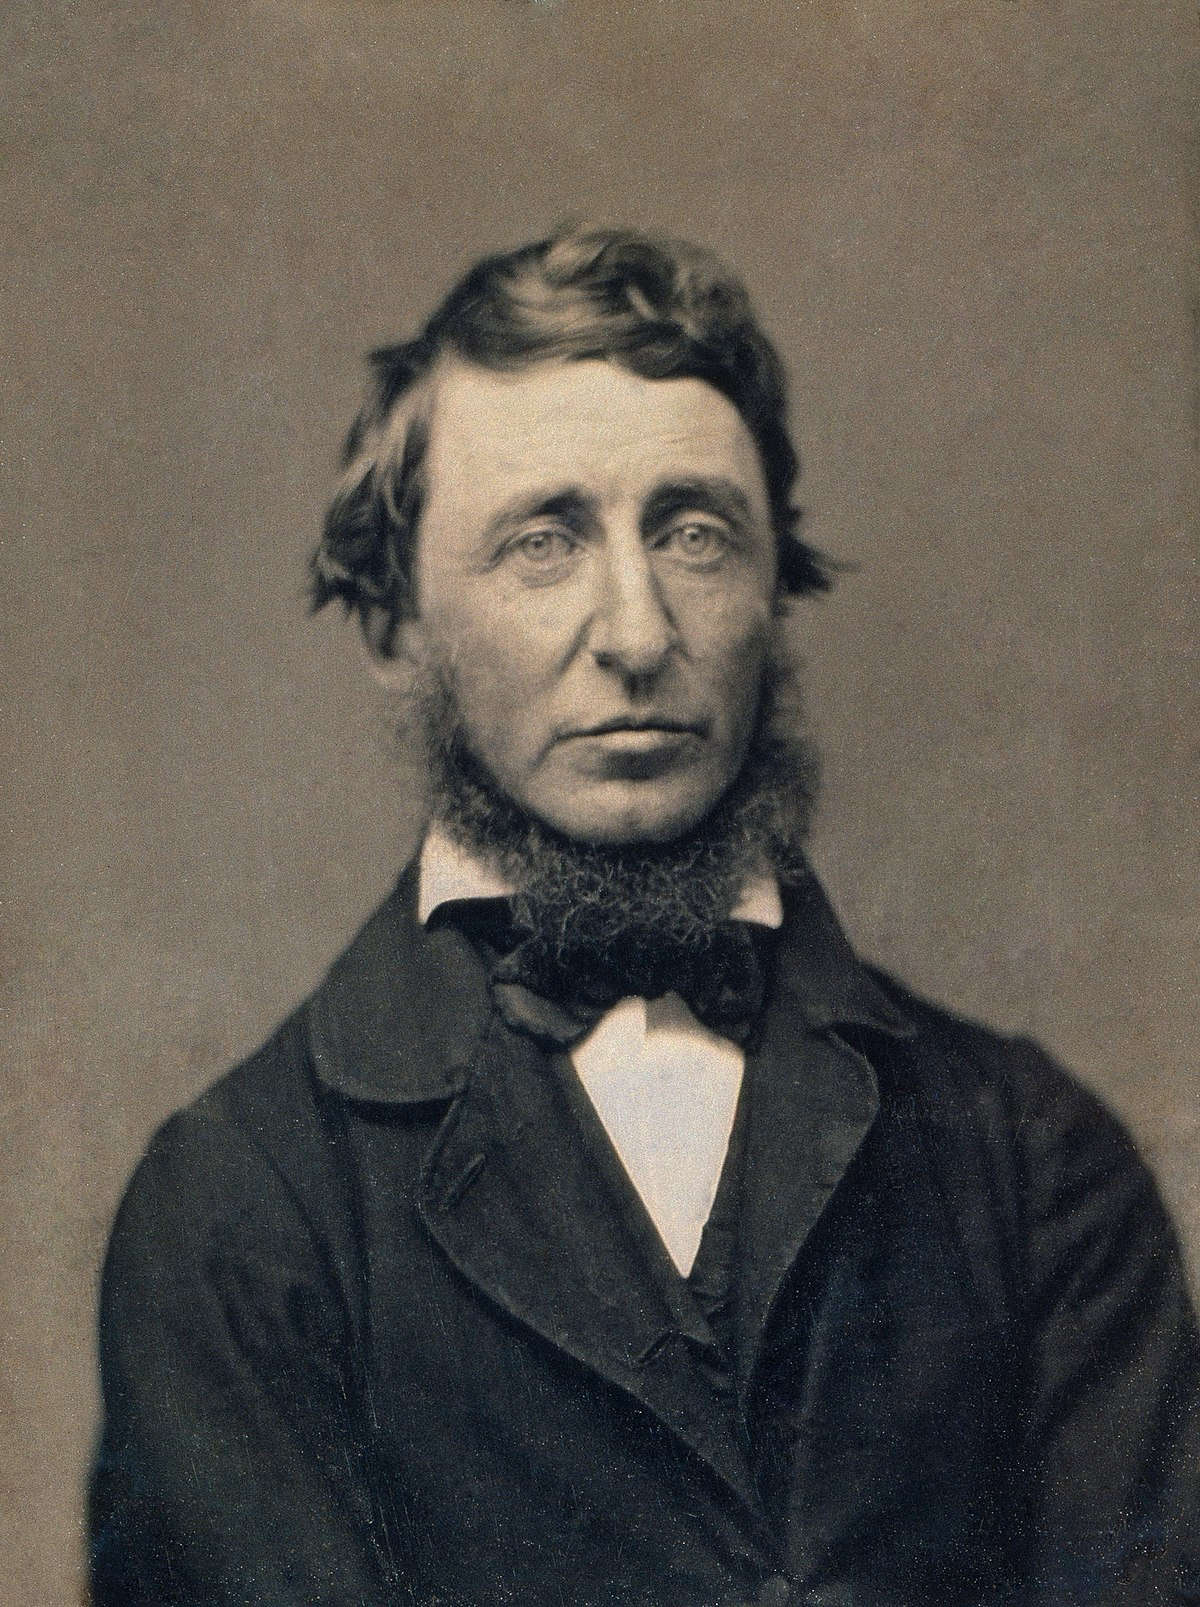 An overview of the civil disobedience in the work of henry david thoreau an american author